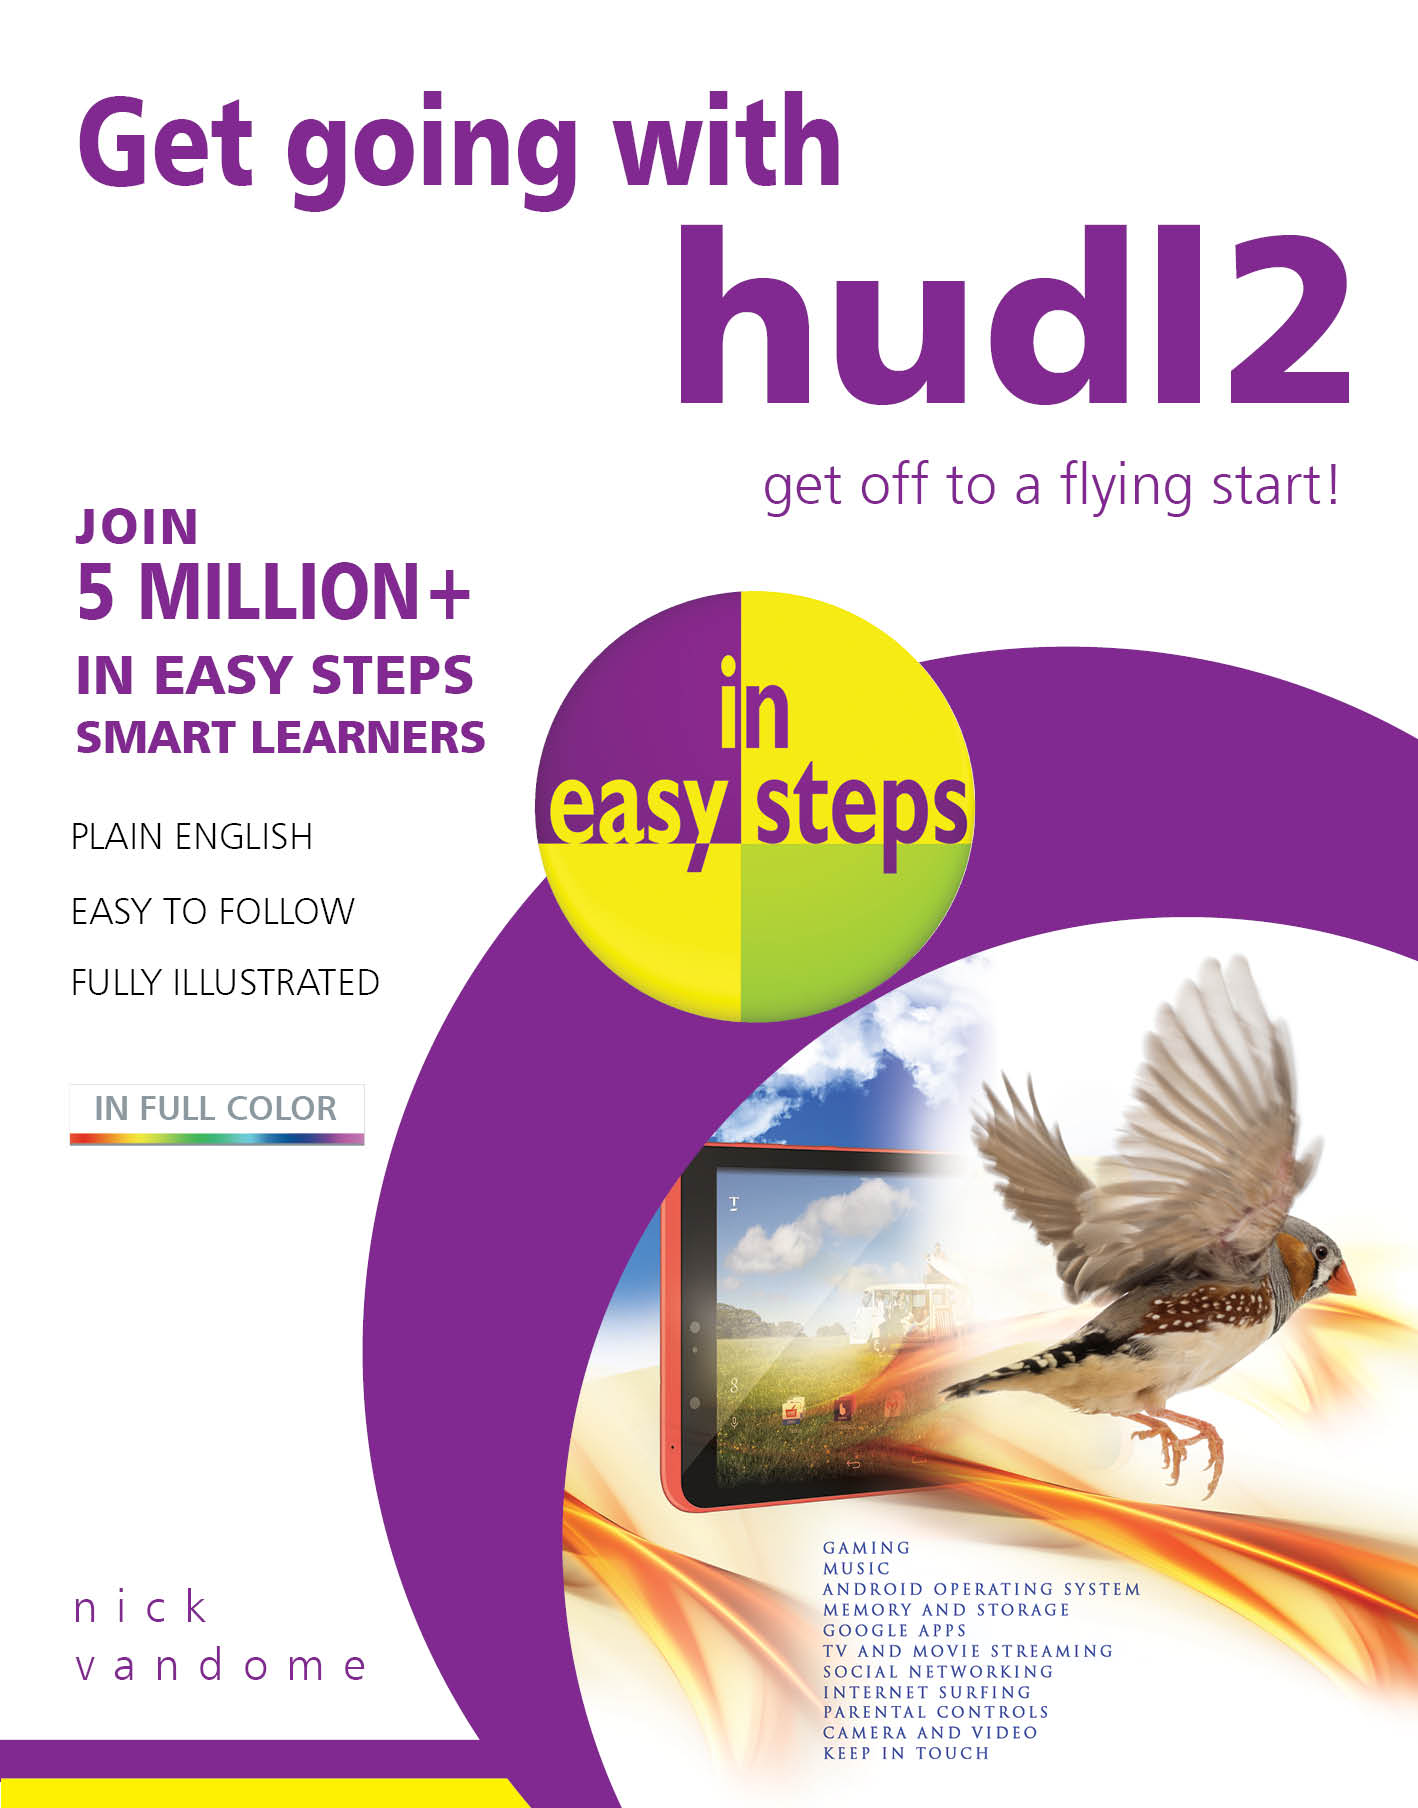 Get going with hudl2 in easy steps PDF